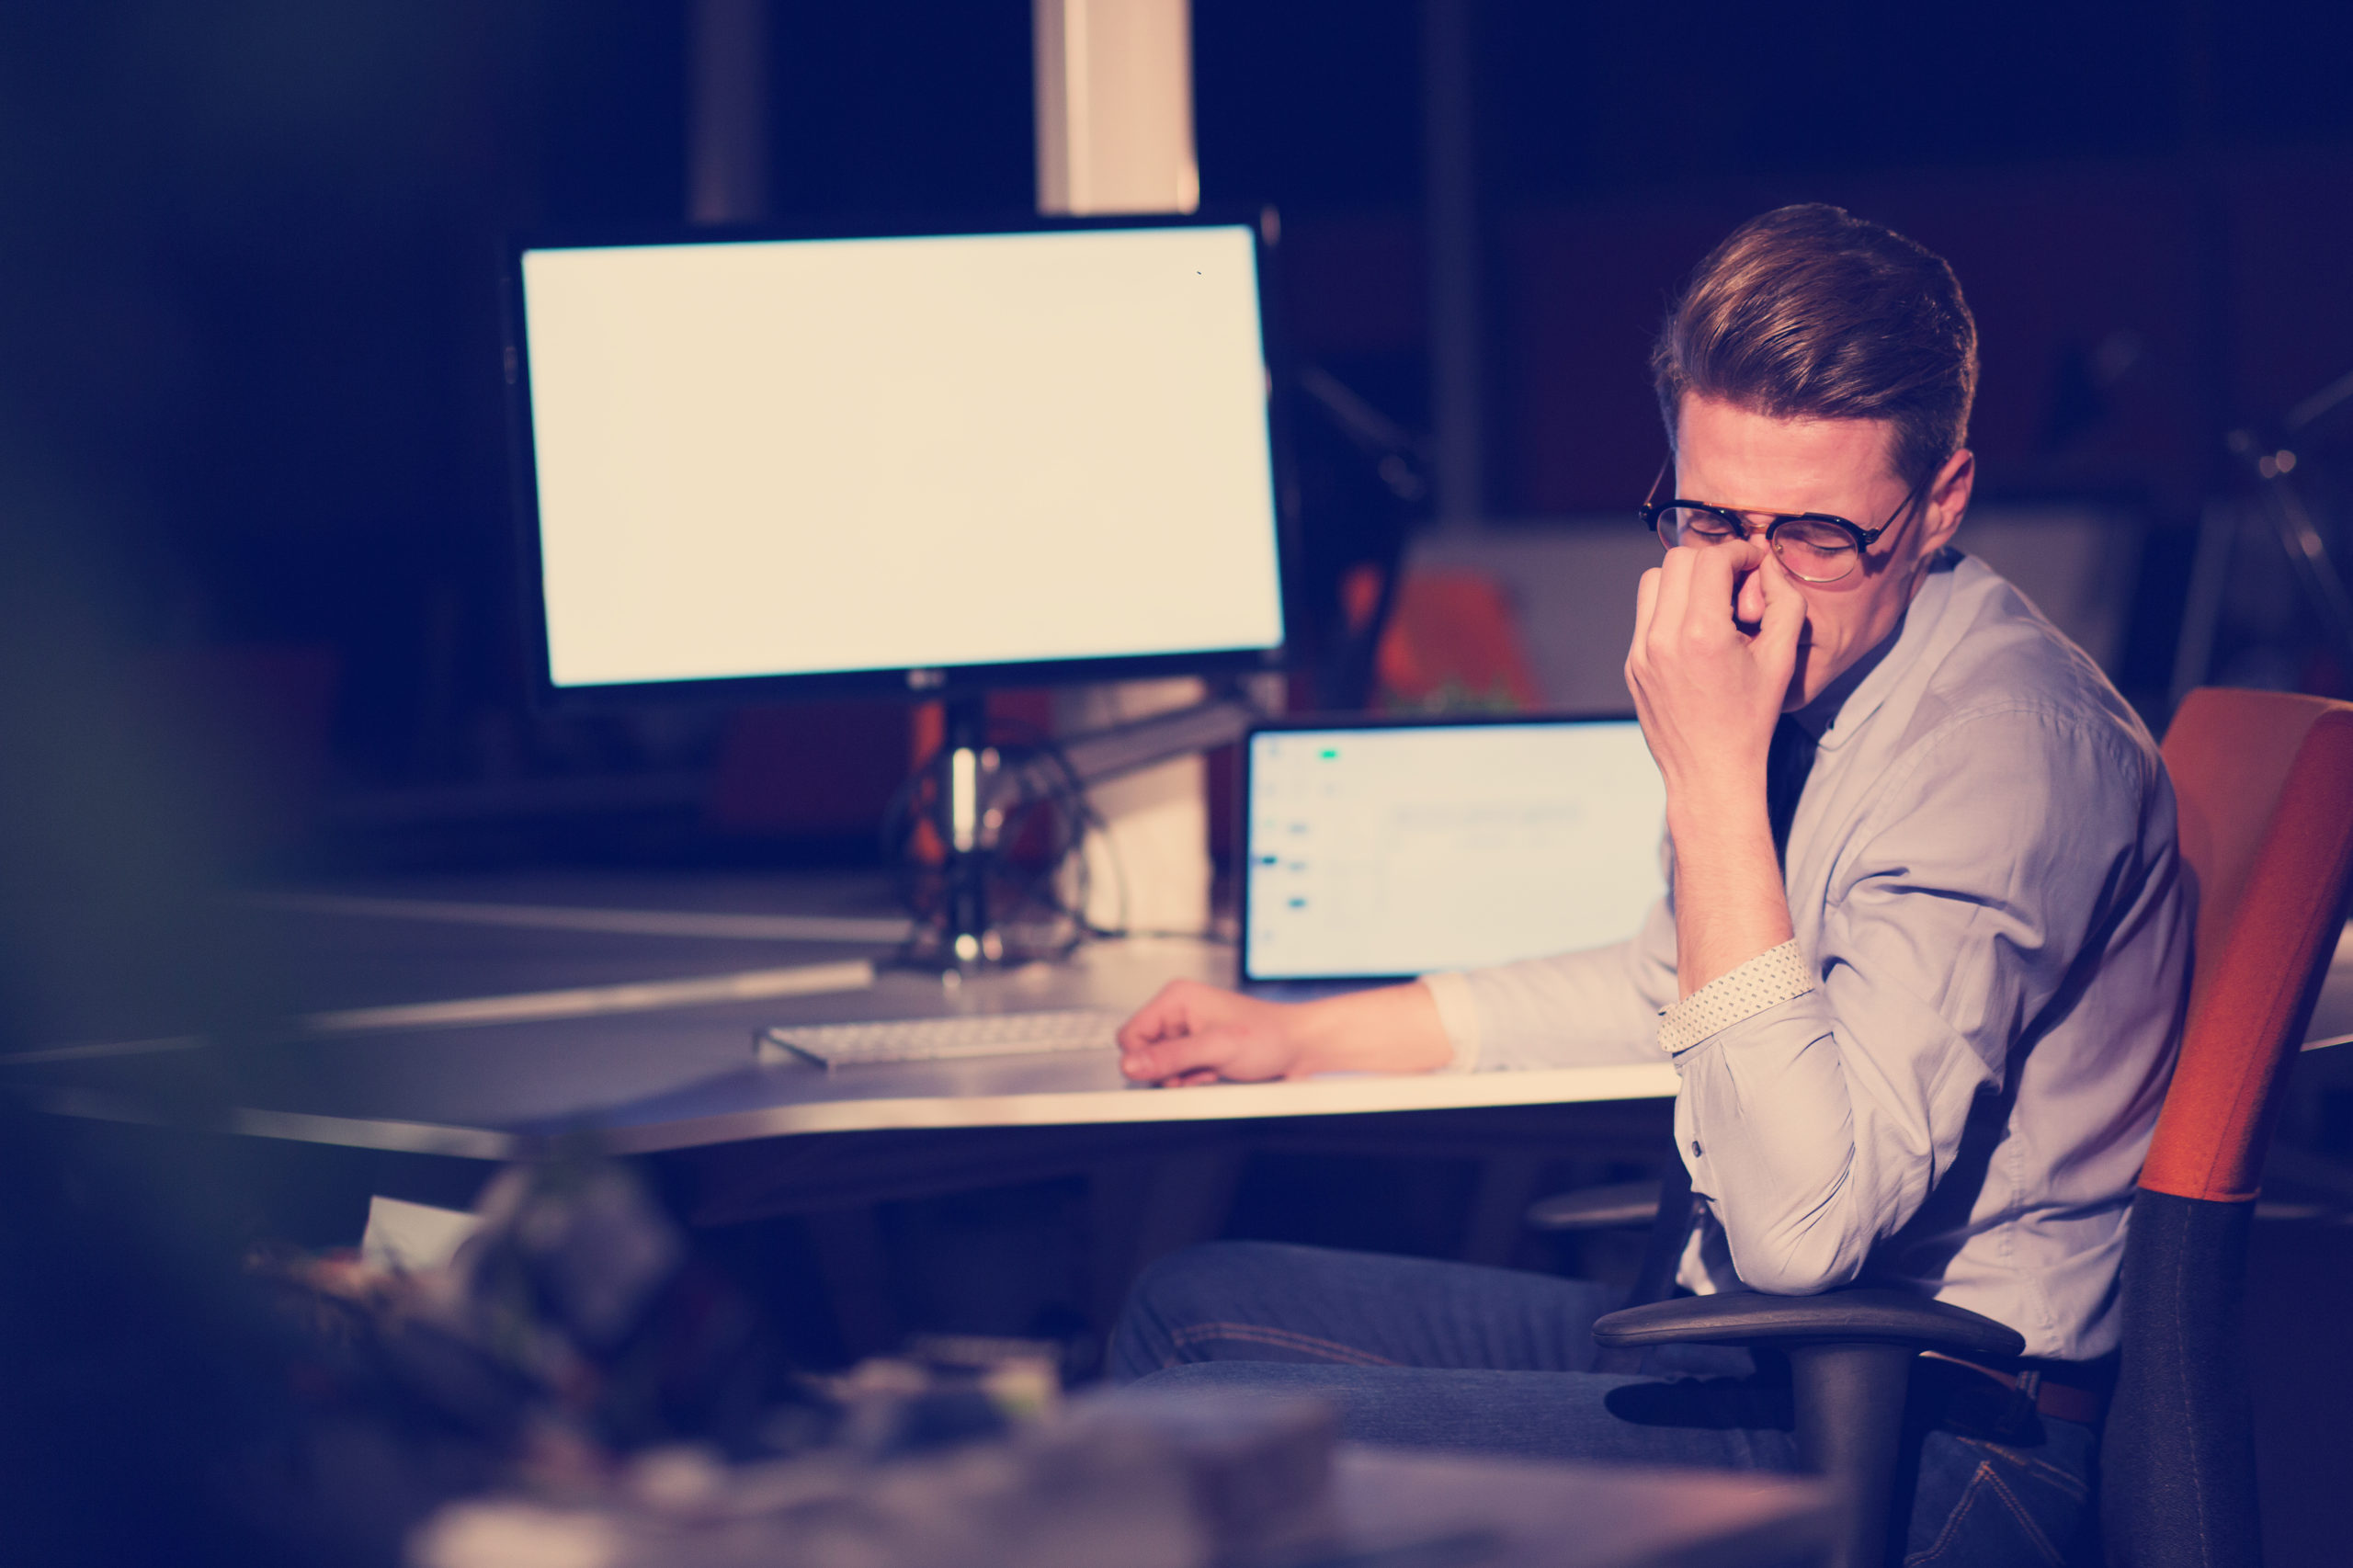 man working on computer in dark office PR8DH5L scaled - What are Sleep Glasses?